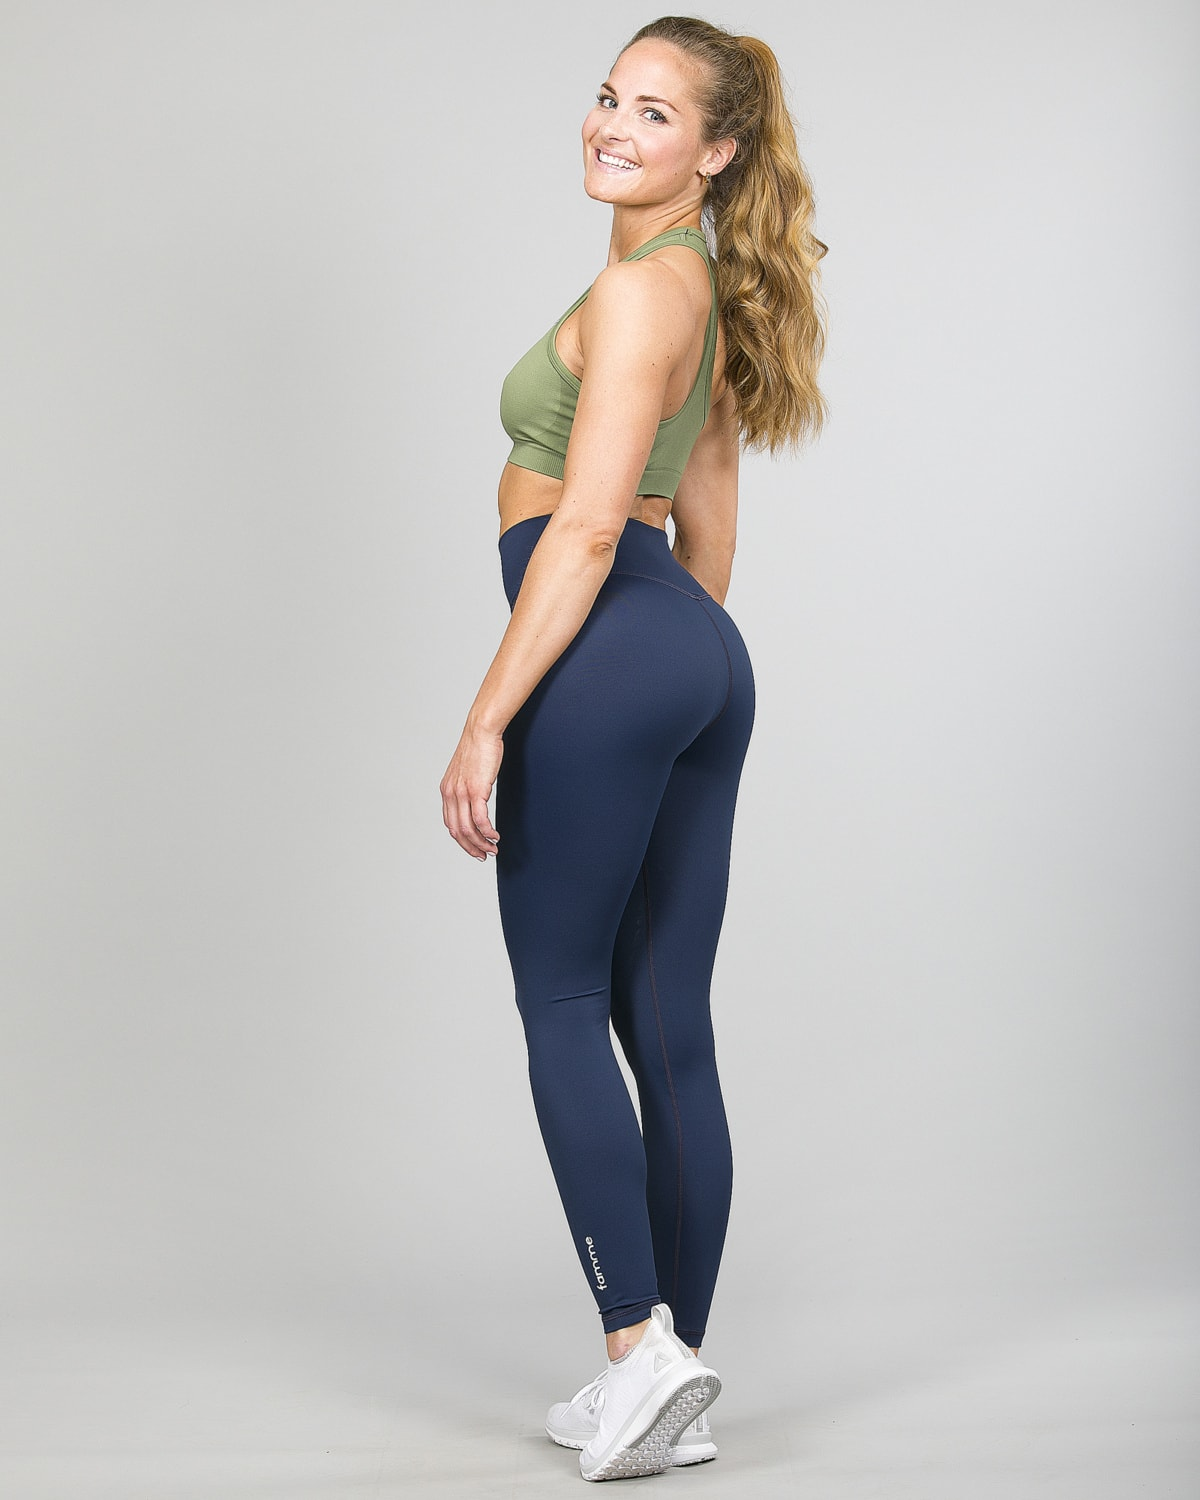 Famme Essential High Waist Legging – Midnight Blue ehwt-mb and Drop It Sports Bra Army Green vhwl-ag f